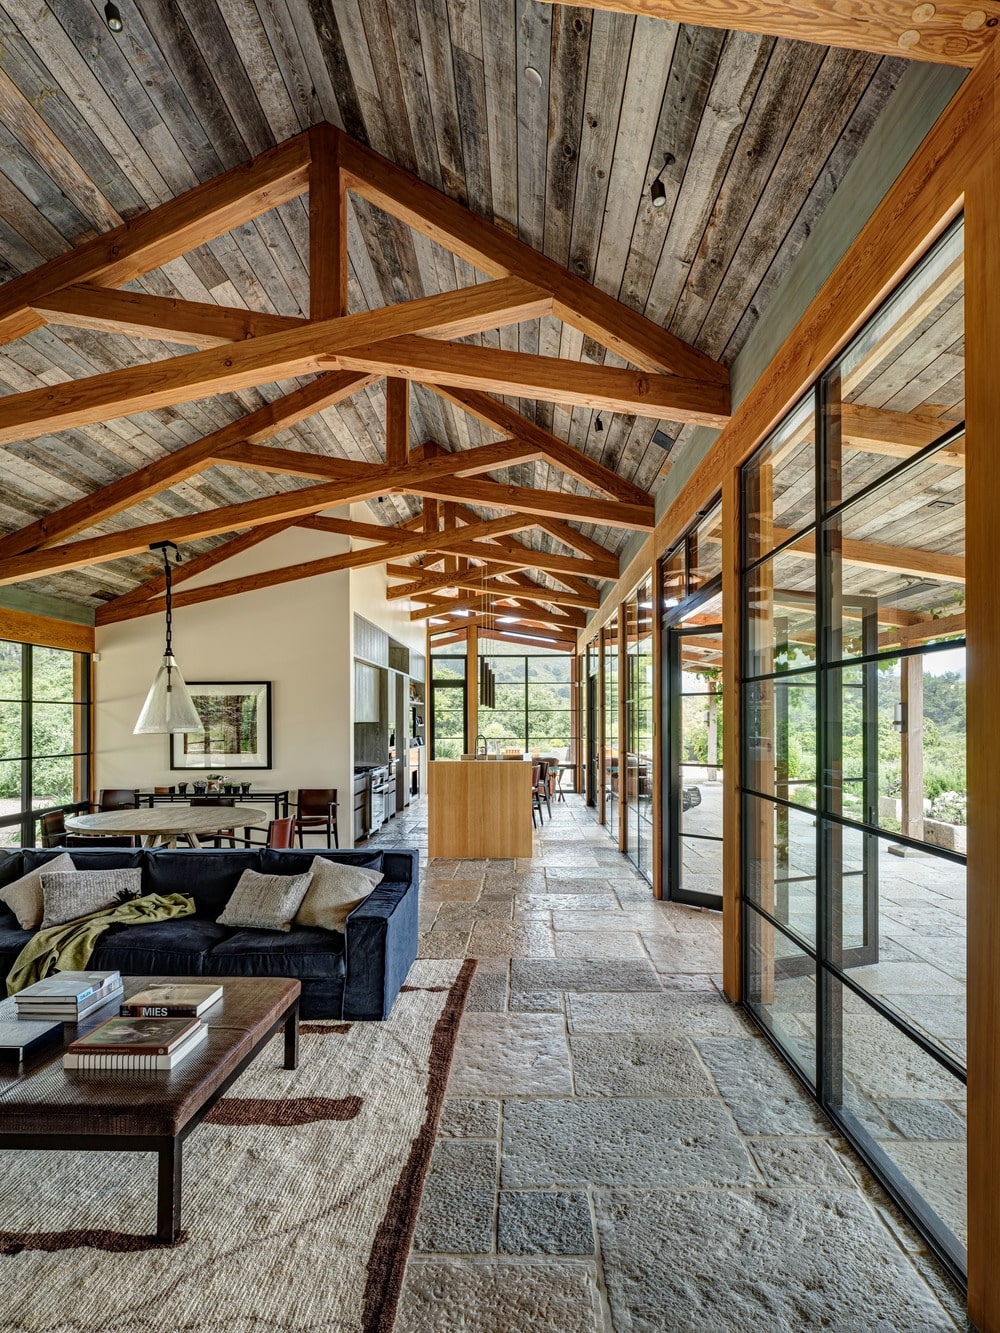 This is the great room that houses the living room, dining area and the kitchen under the same tall cathedral ceiling with exposed beams that stand out against the wooden ceiling.